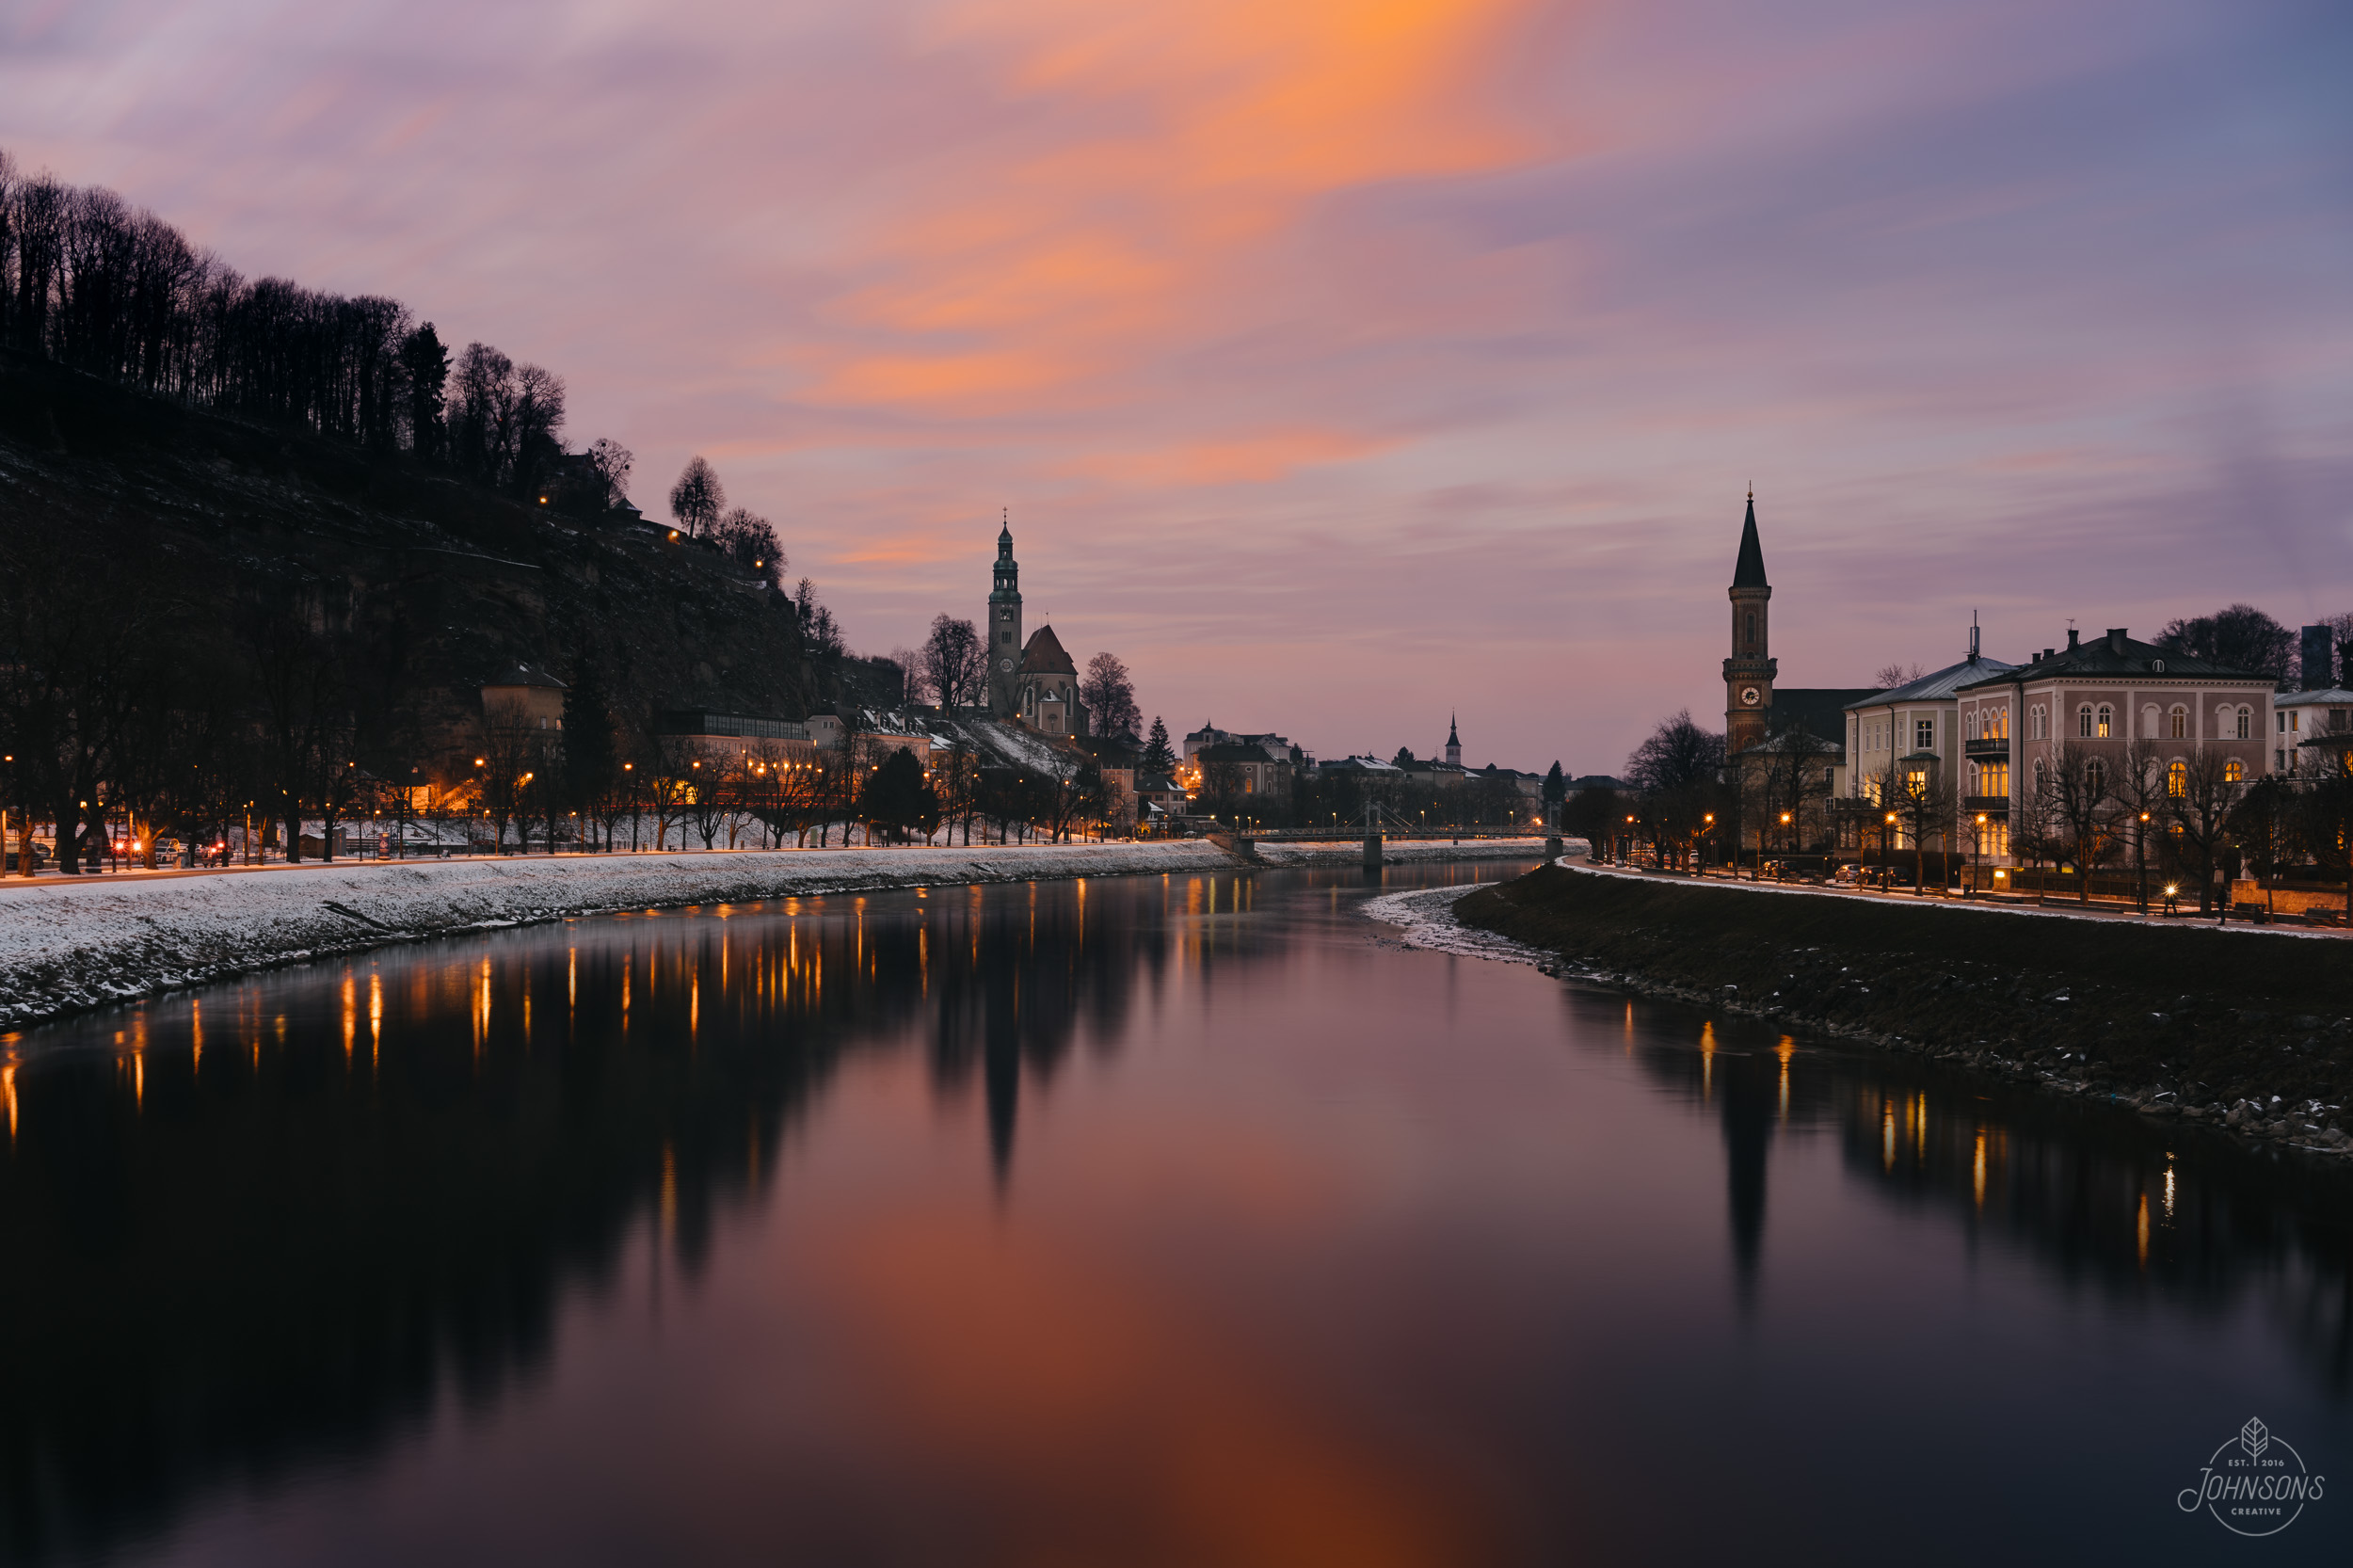 Sony a7rii  35mm 2.8  f11  8 sec  ISO 100   Streetlights composited in to sunset photograph  The Salzach runs right through the Old Town, and there are several pedestrian only bridges that cross. This is looking NW from the Makartseg bridge.    Much thanks to my wonderful mother for hanging out in a grocery store while I was taking this photo in the cold.    This image is available for print,  click here  to visit our store.